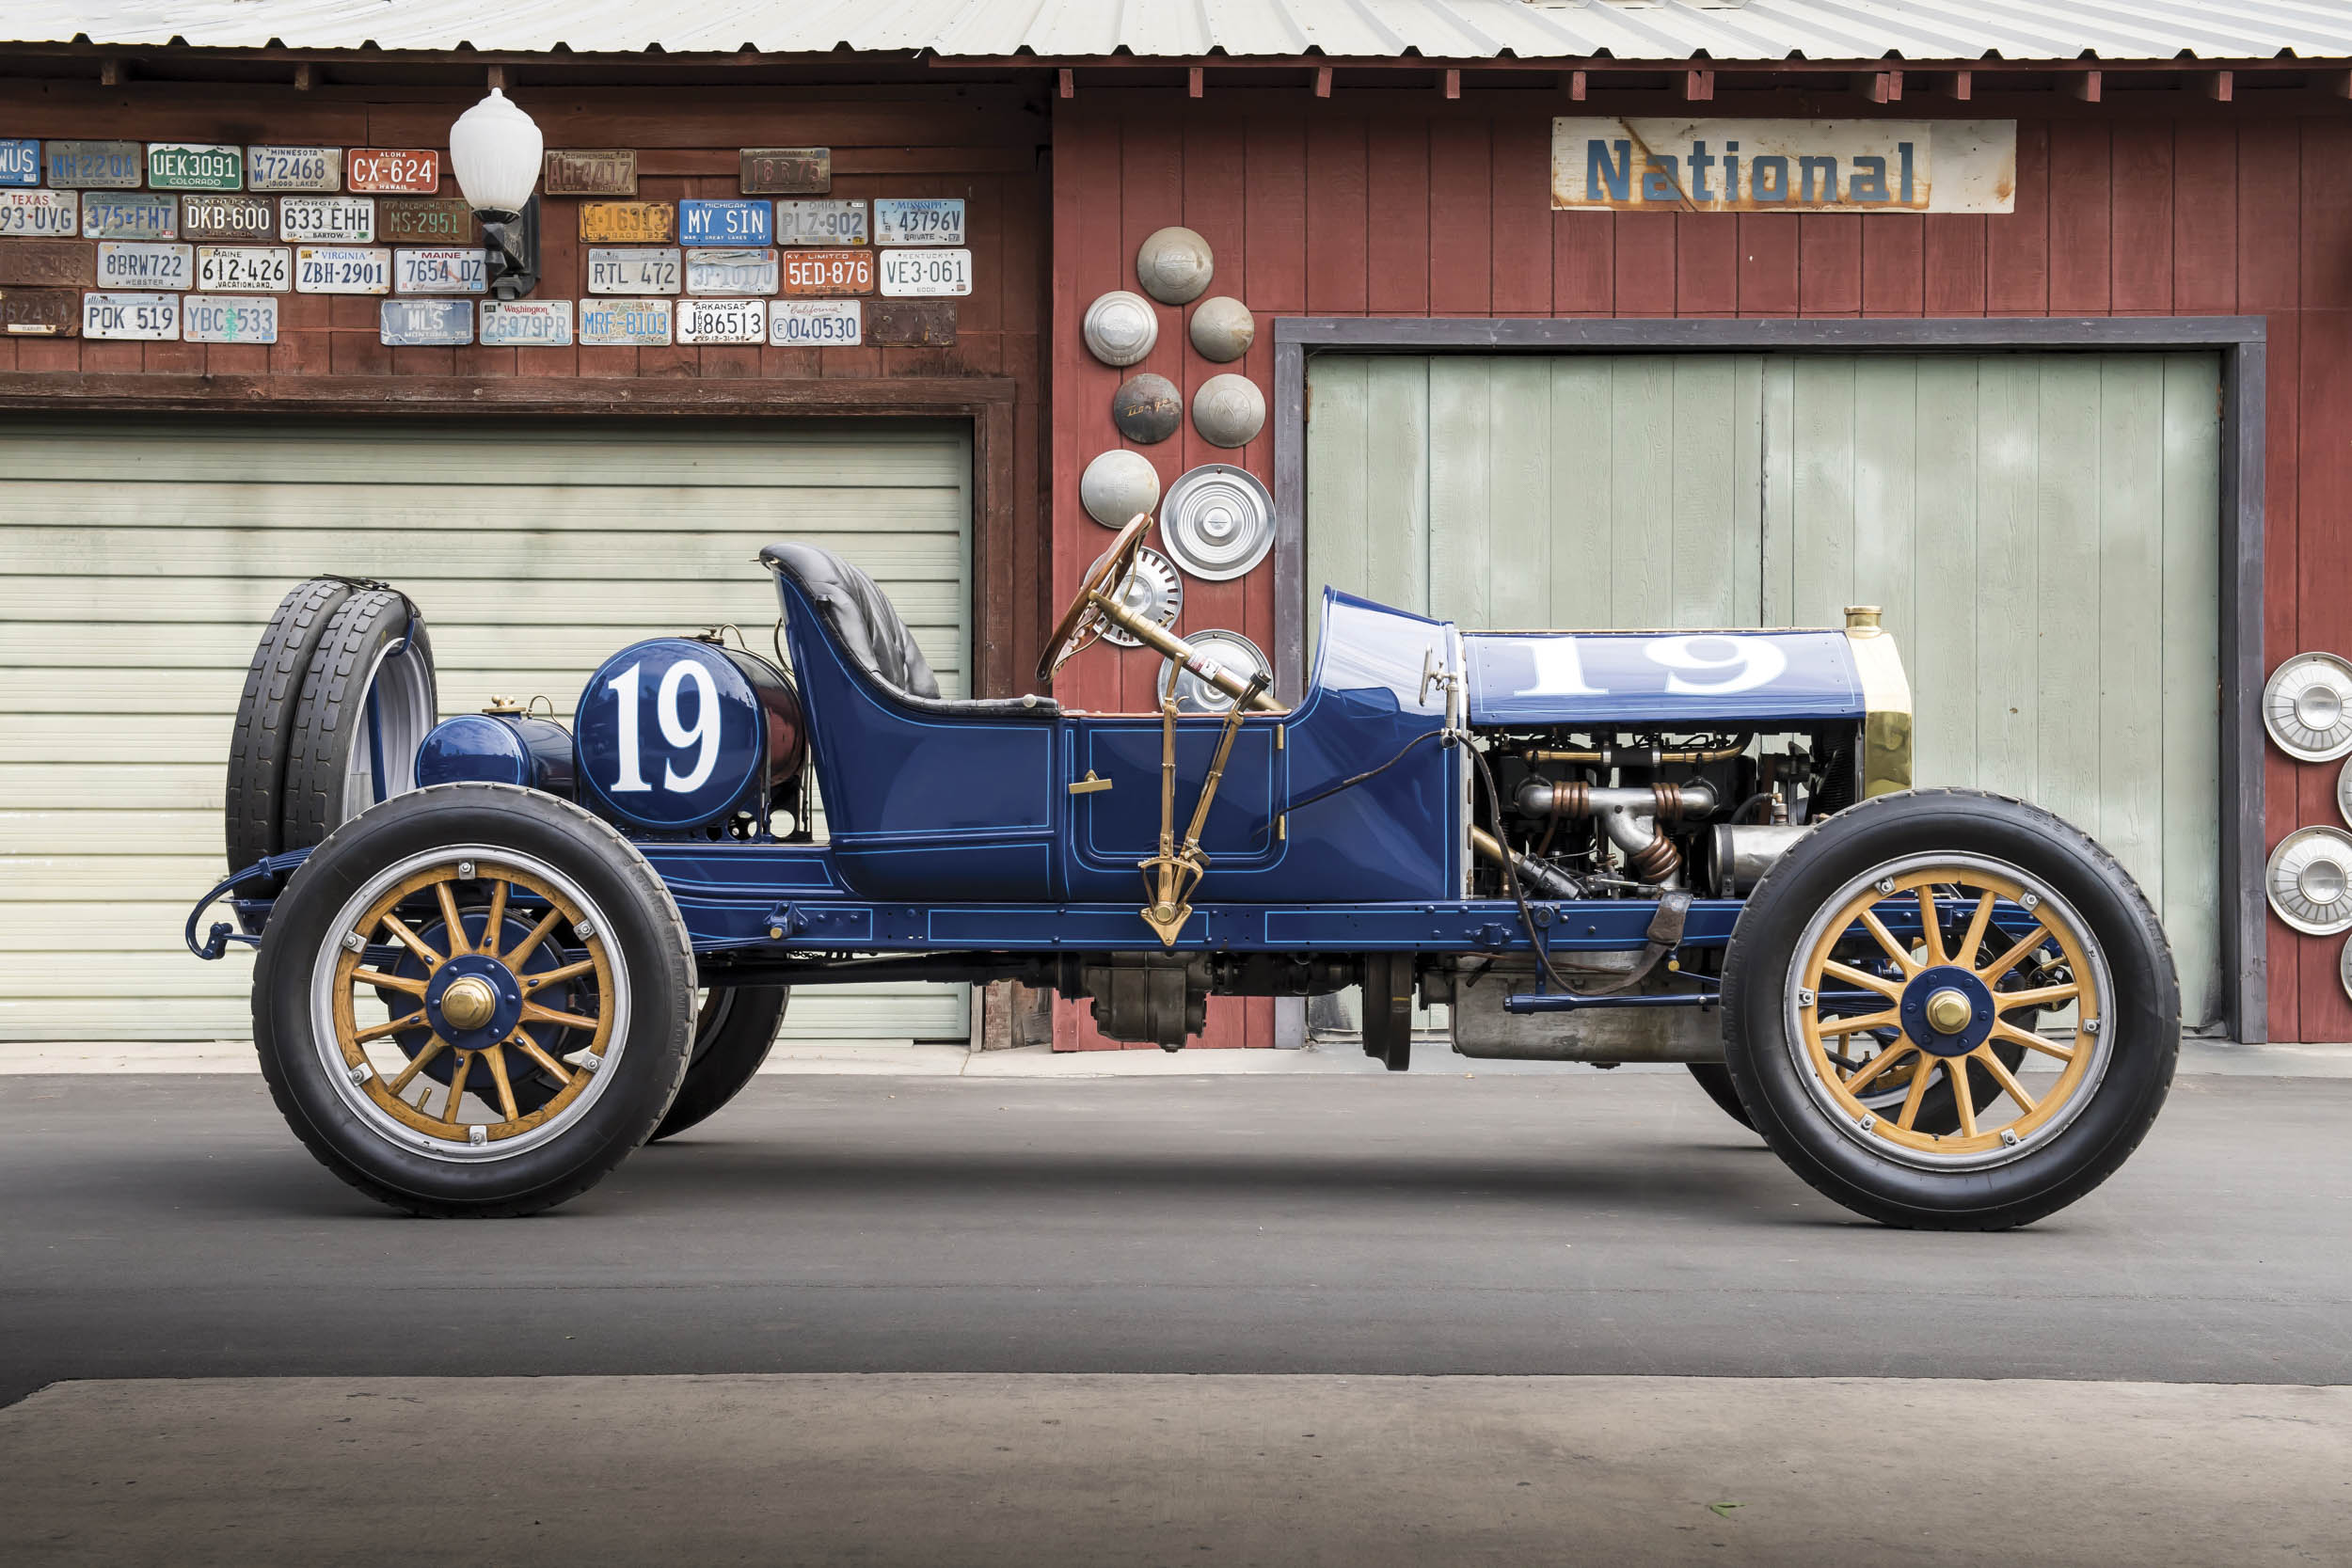 This 1911 Speedway Roadster, with its 450-cubic-inch four-cylinder, is owned by Charles Test, the great-great-grandson of National's founder.